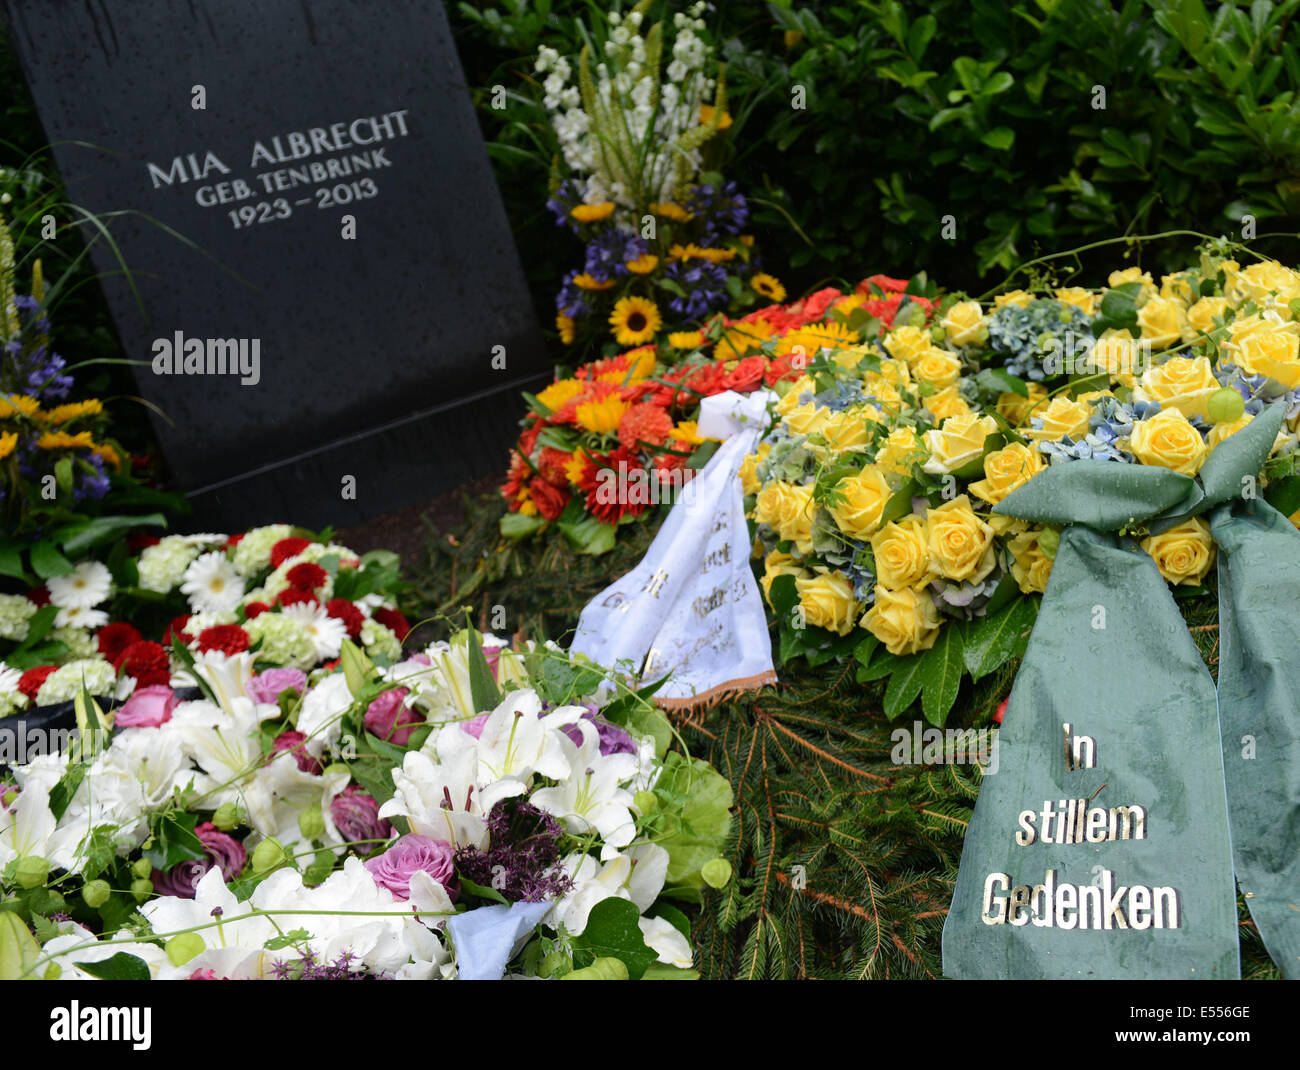 Essen Germany 21st July 2014 Wreaths Lie On The Grave Of Mia